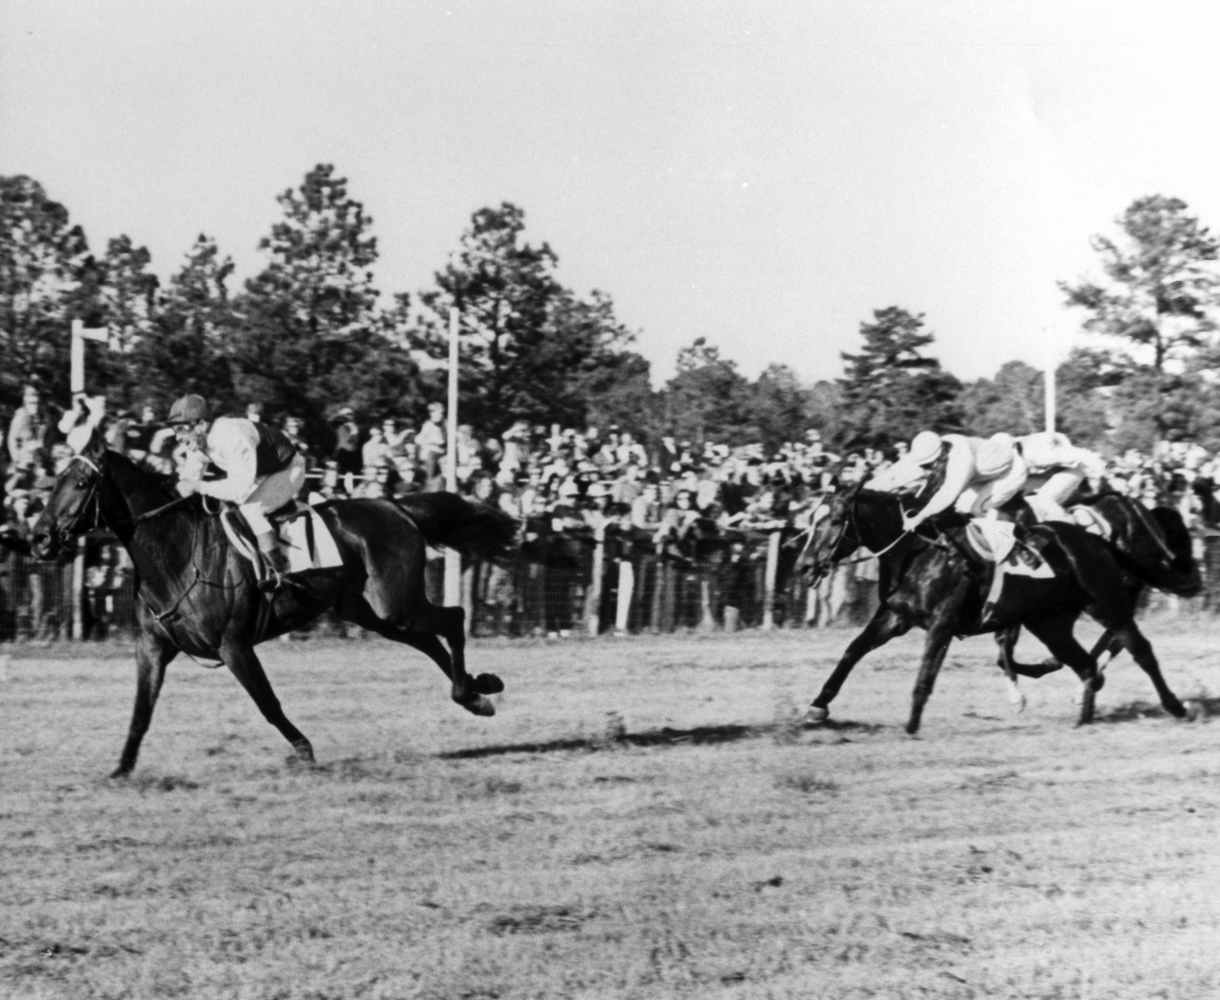 Café Prince (Dave Washer up) racing to victory in the 1975 Colonial Cup at Camden (The BloodHorse/Museum Collection)